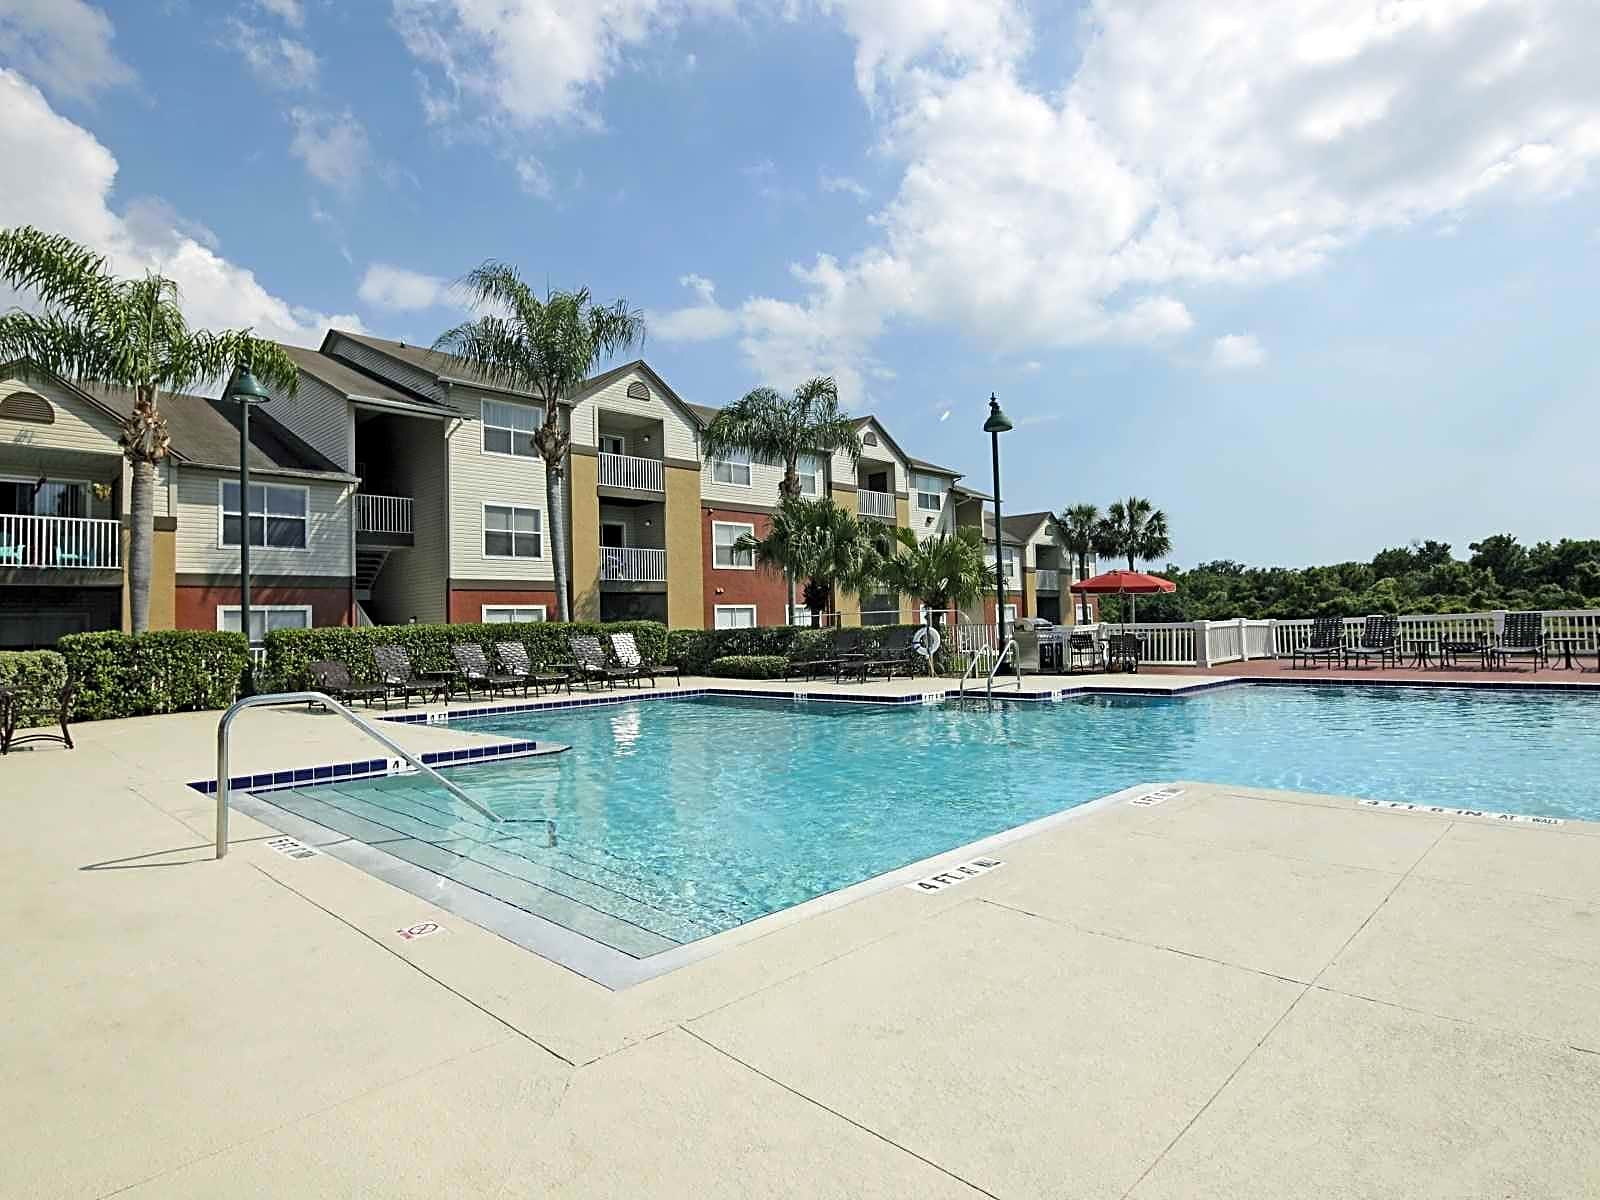 Apartments and Houses for Rent in Bradenton